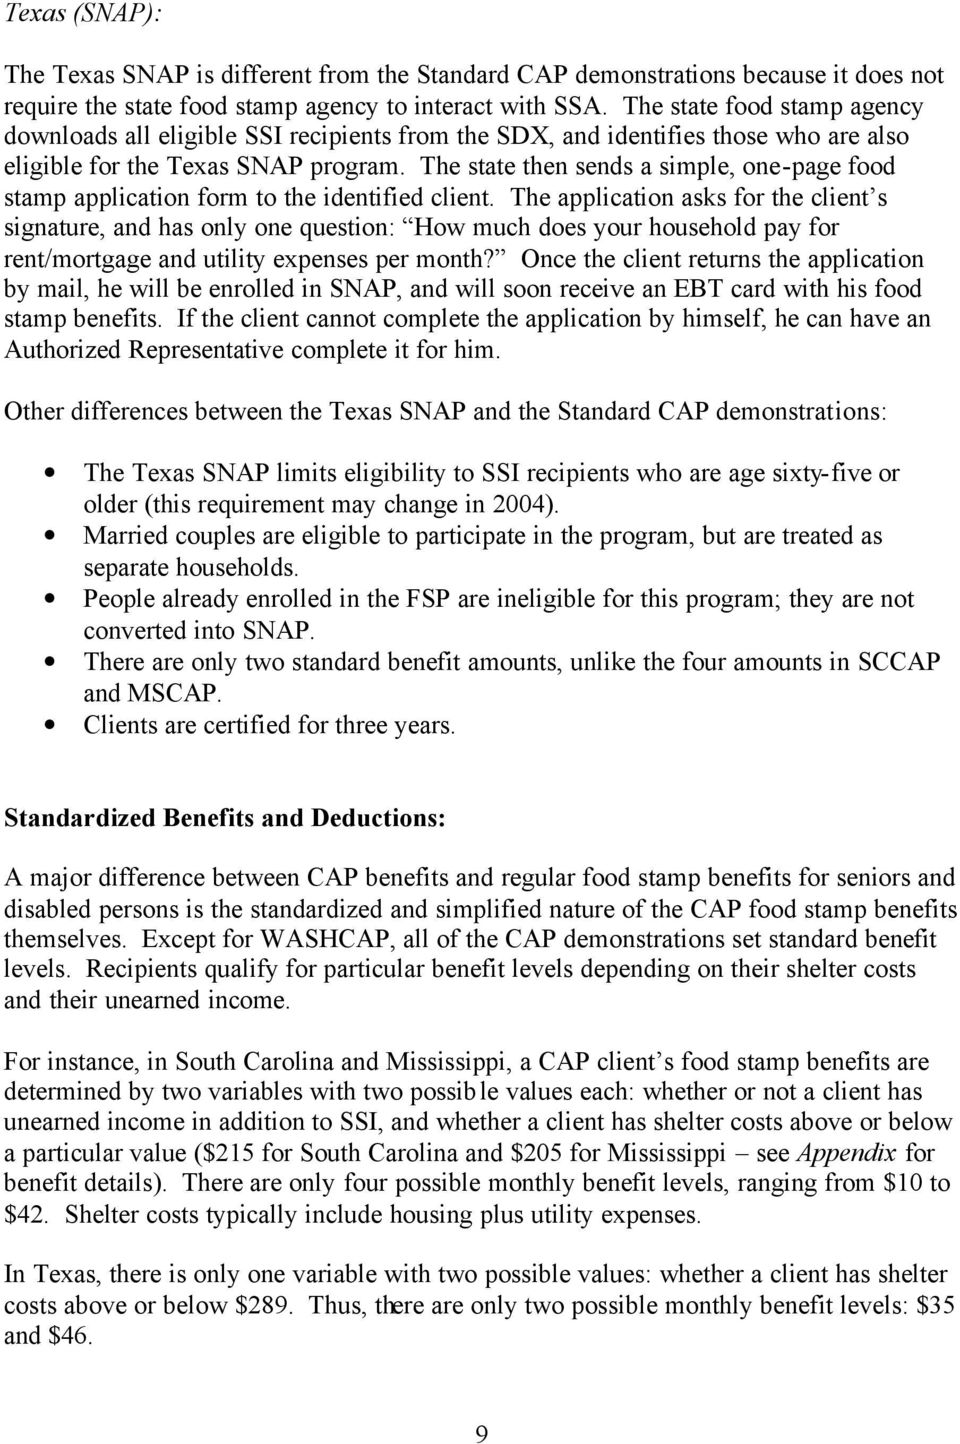 A Guide to the Supplemental Security Income/Food Stamp